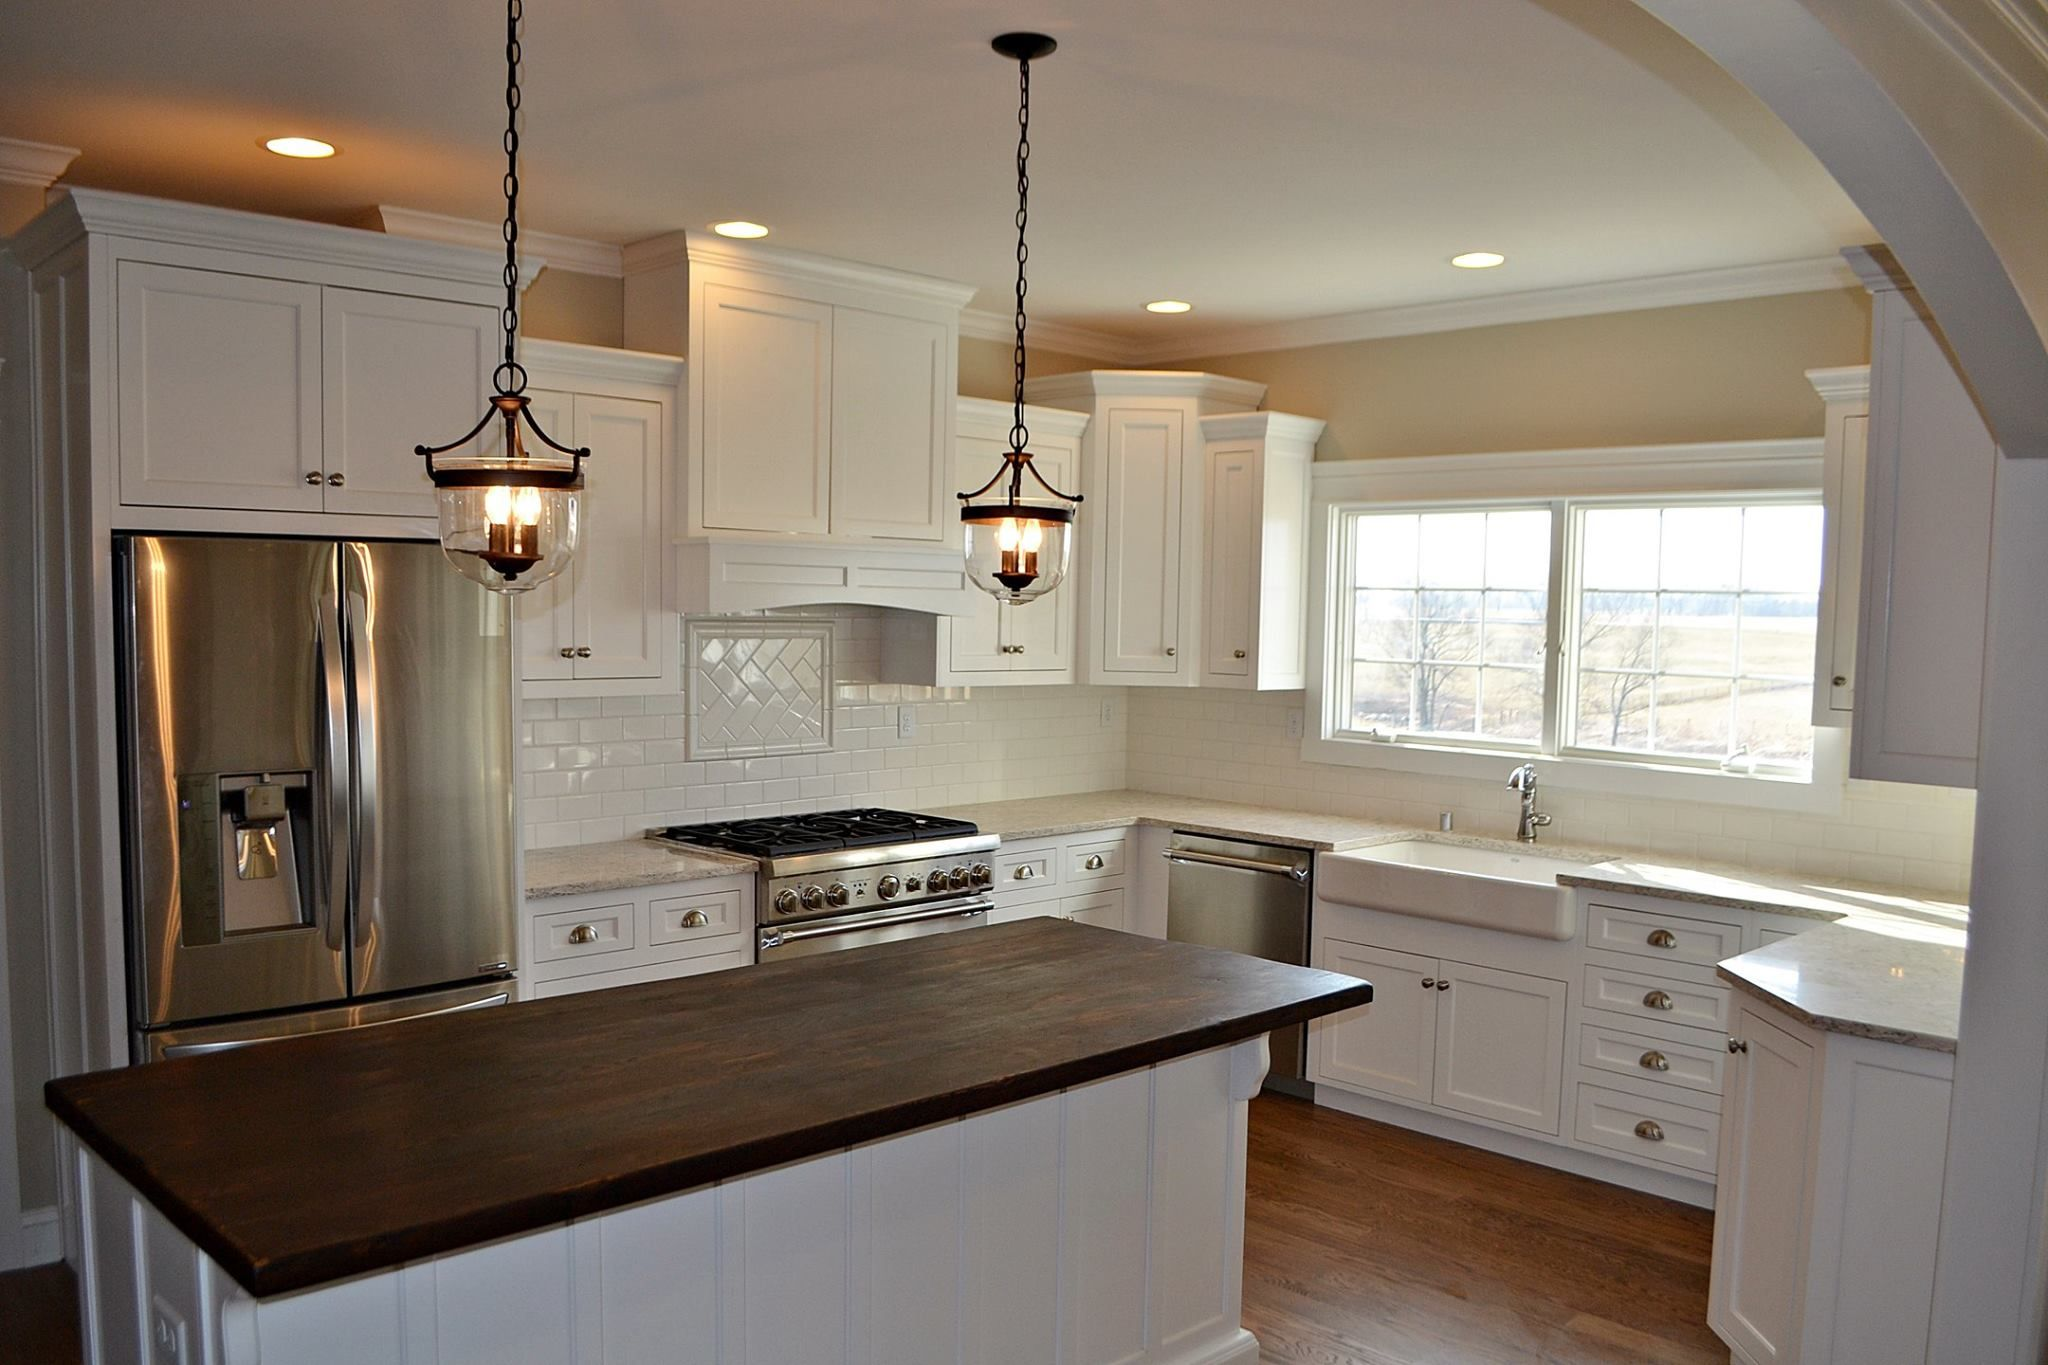 Kitchen Castled Cabinets Kitchen Layouts With Island Kitchen Layout Kitchen